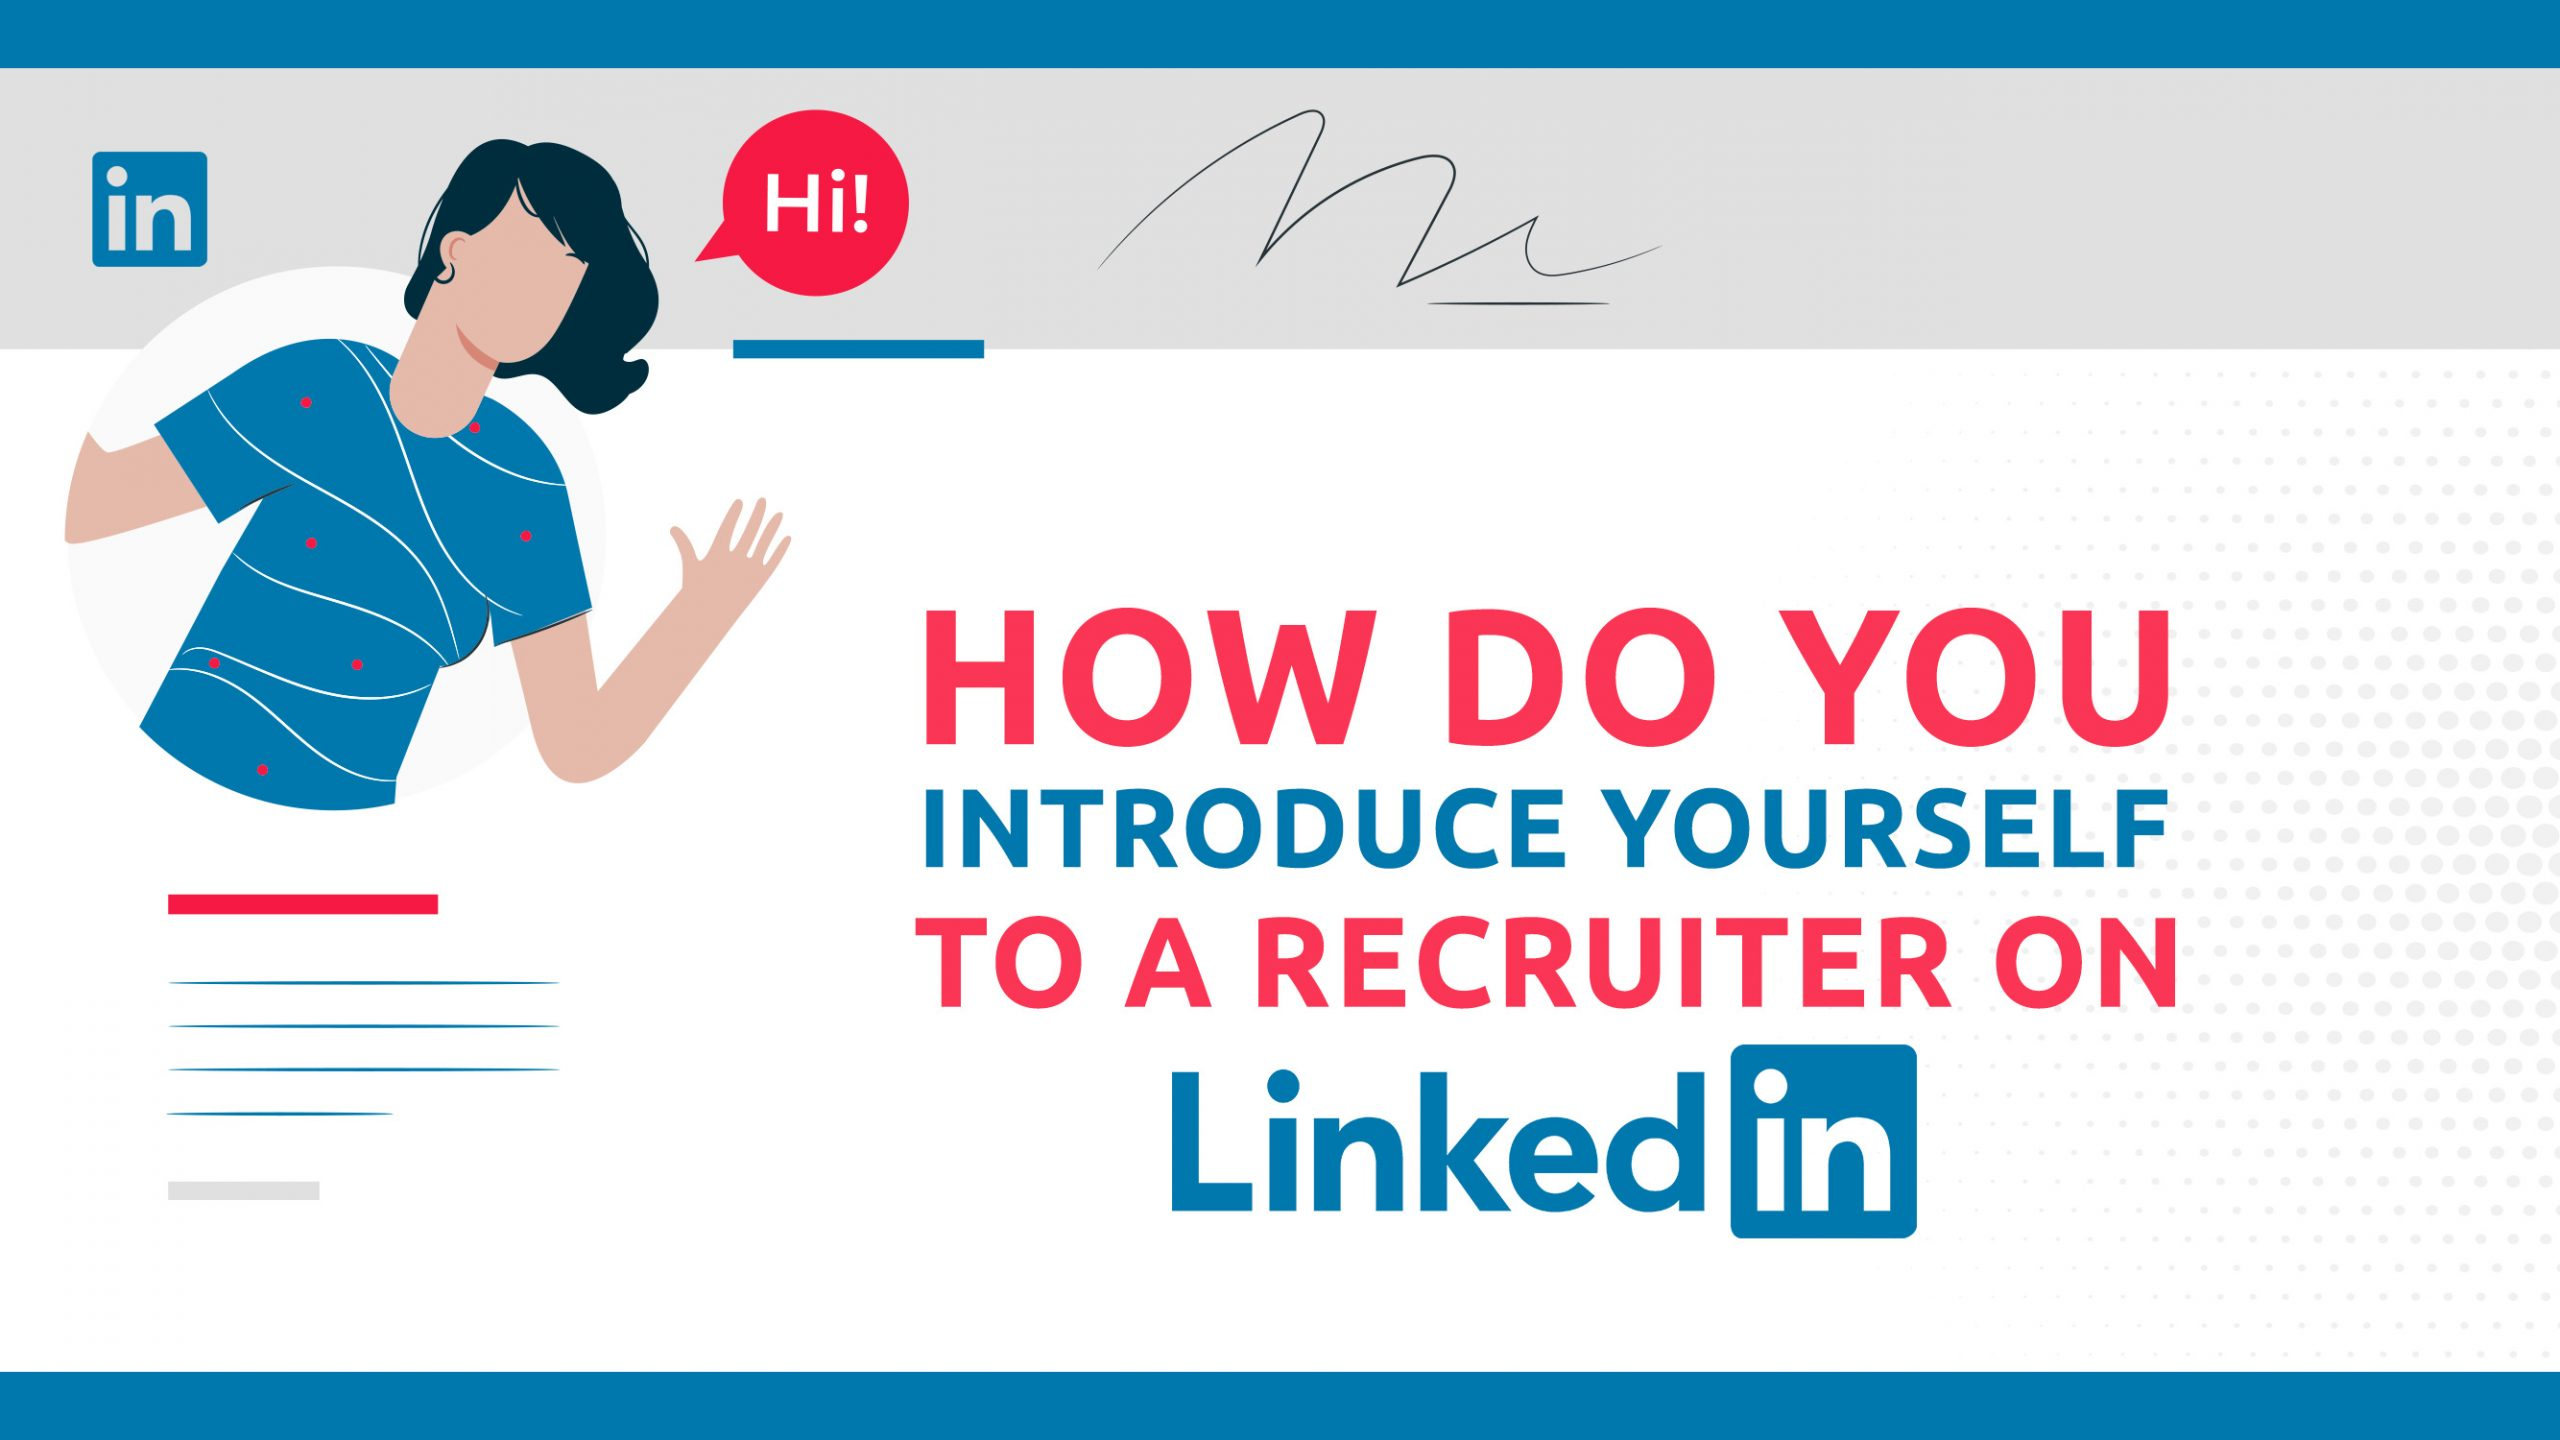 How Do You Introduce Yourself To A Recruiter On LinkedIn?